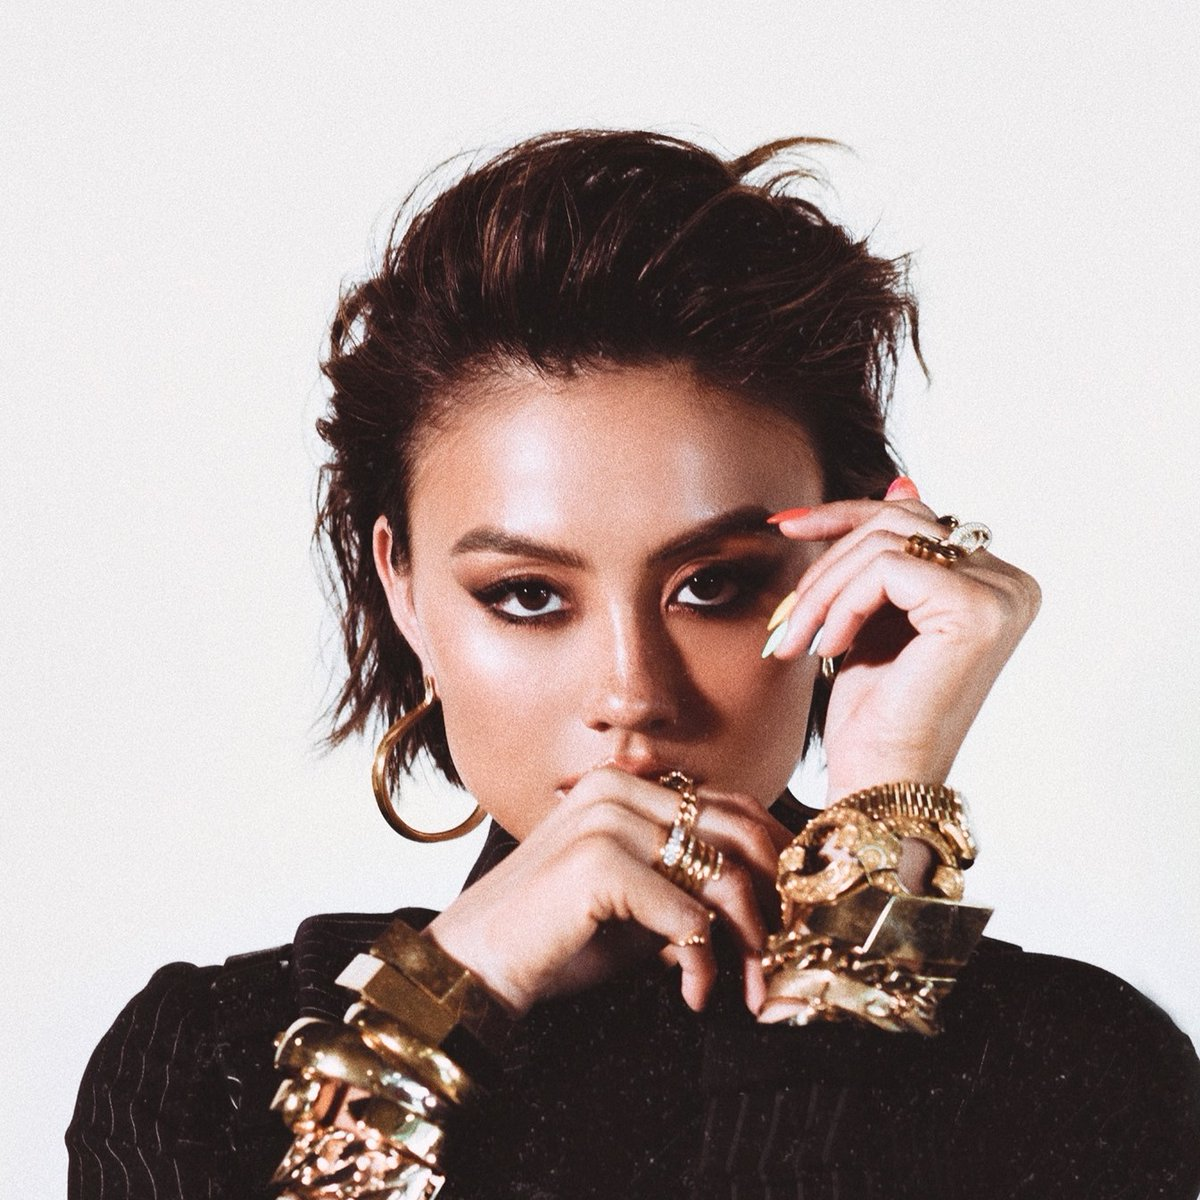 """.@agnezmo has been a top requested artist 16 times.   Request Agnez by tweeting """"Request @agnezmo @MTV #FridayLivestream"""""""